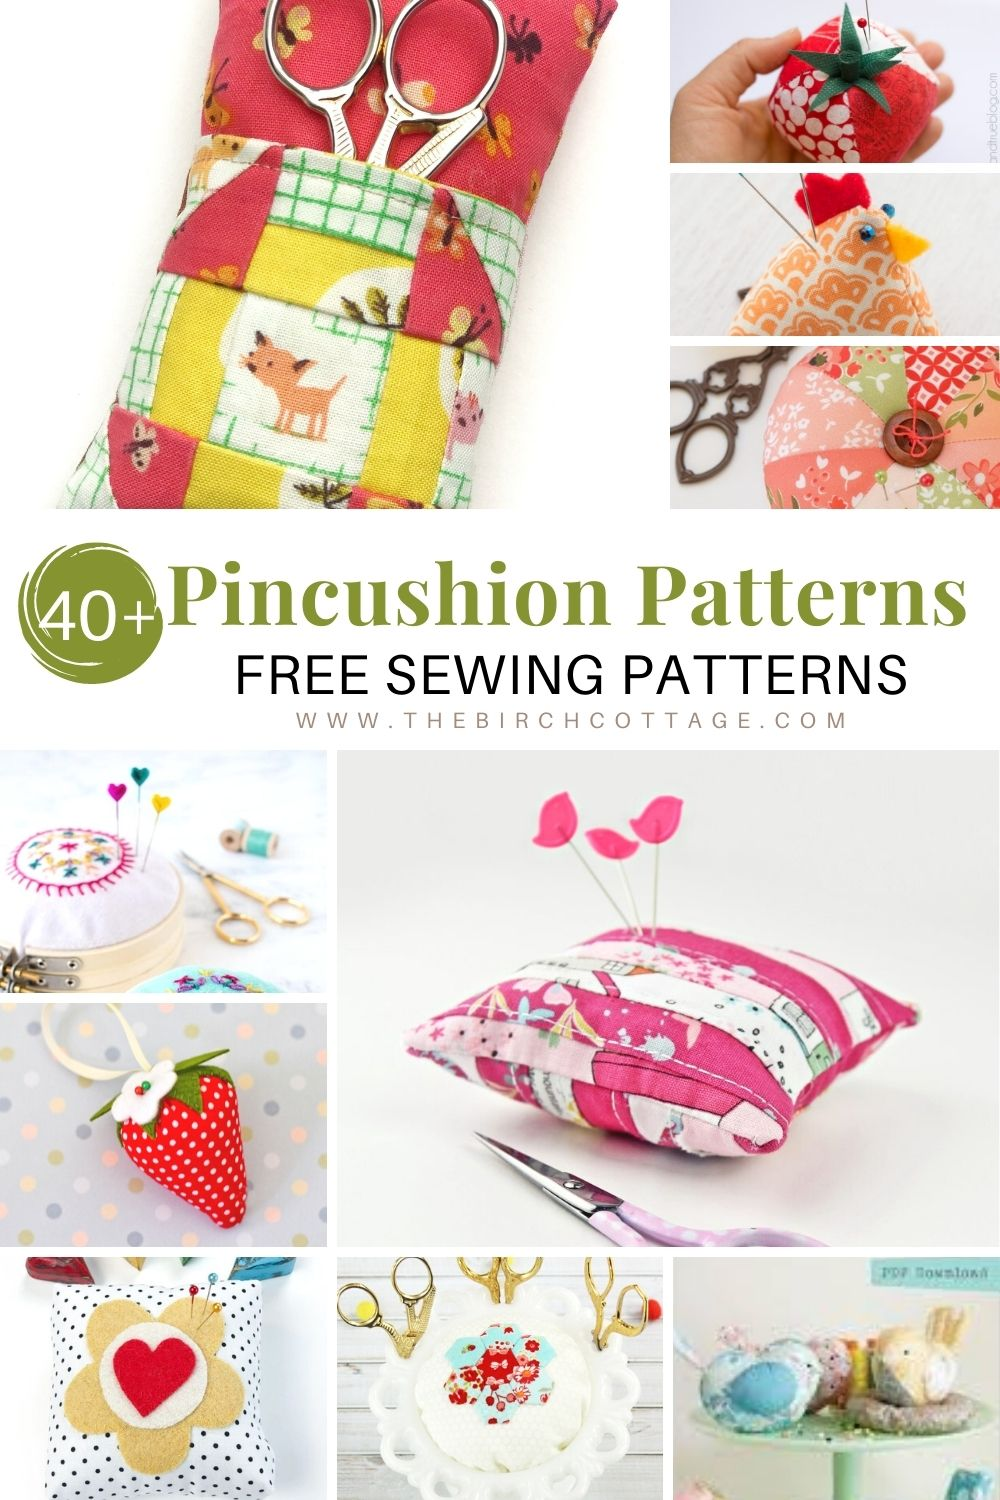 A collection of pincushions